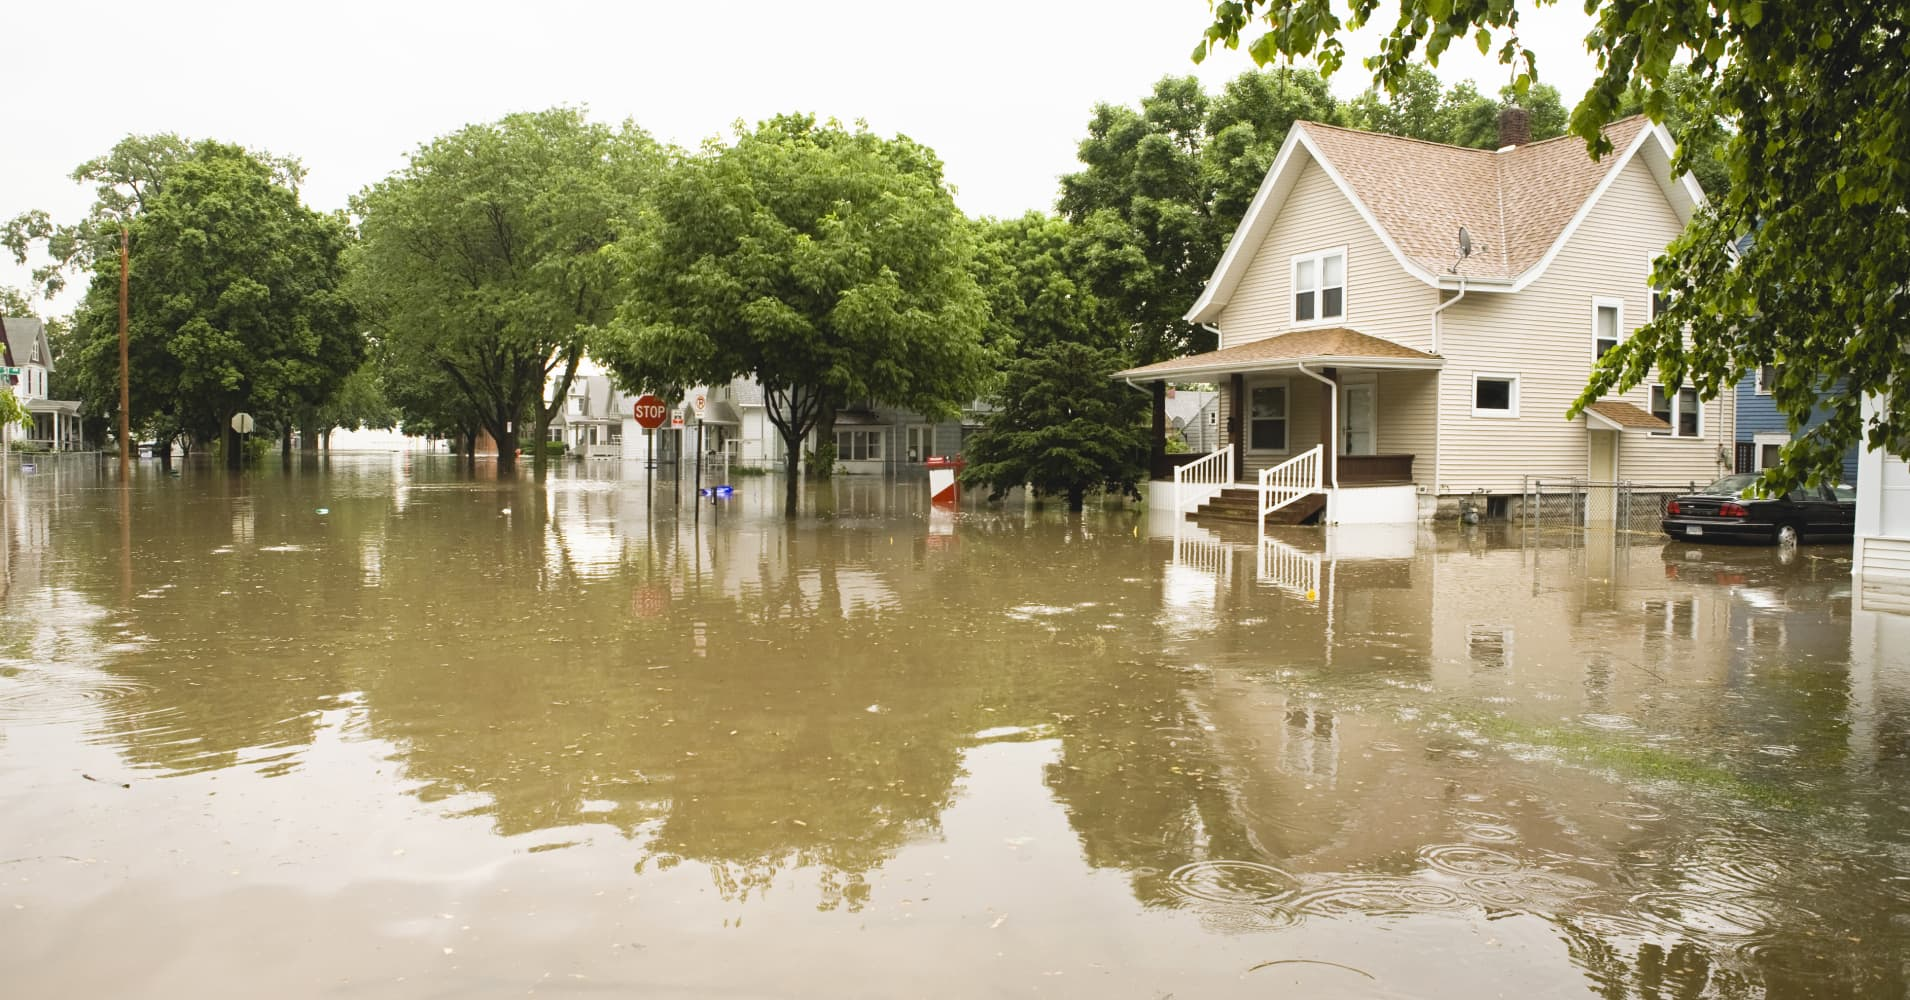 These 10 cities could lose $34 billion-plus in housing to coastal floods by 2050